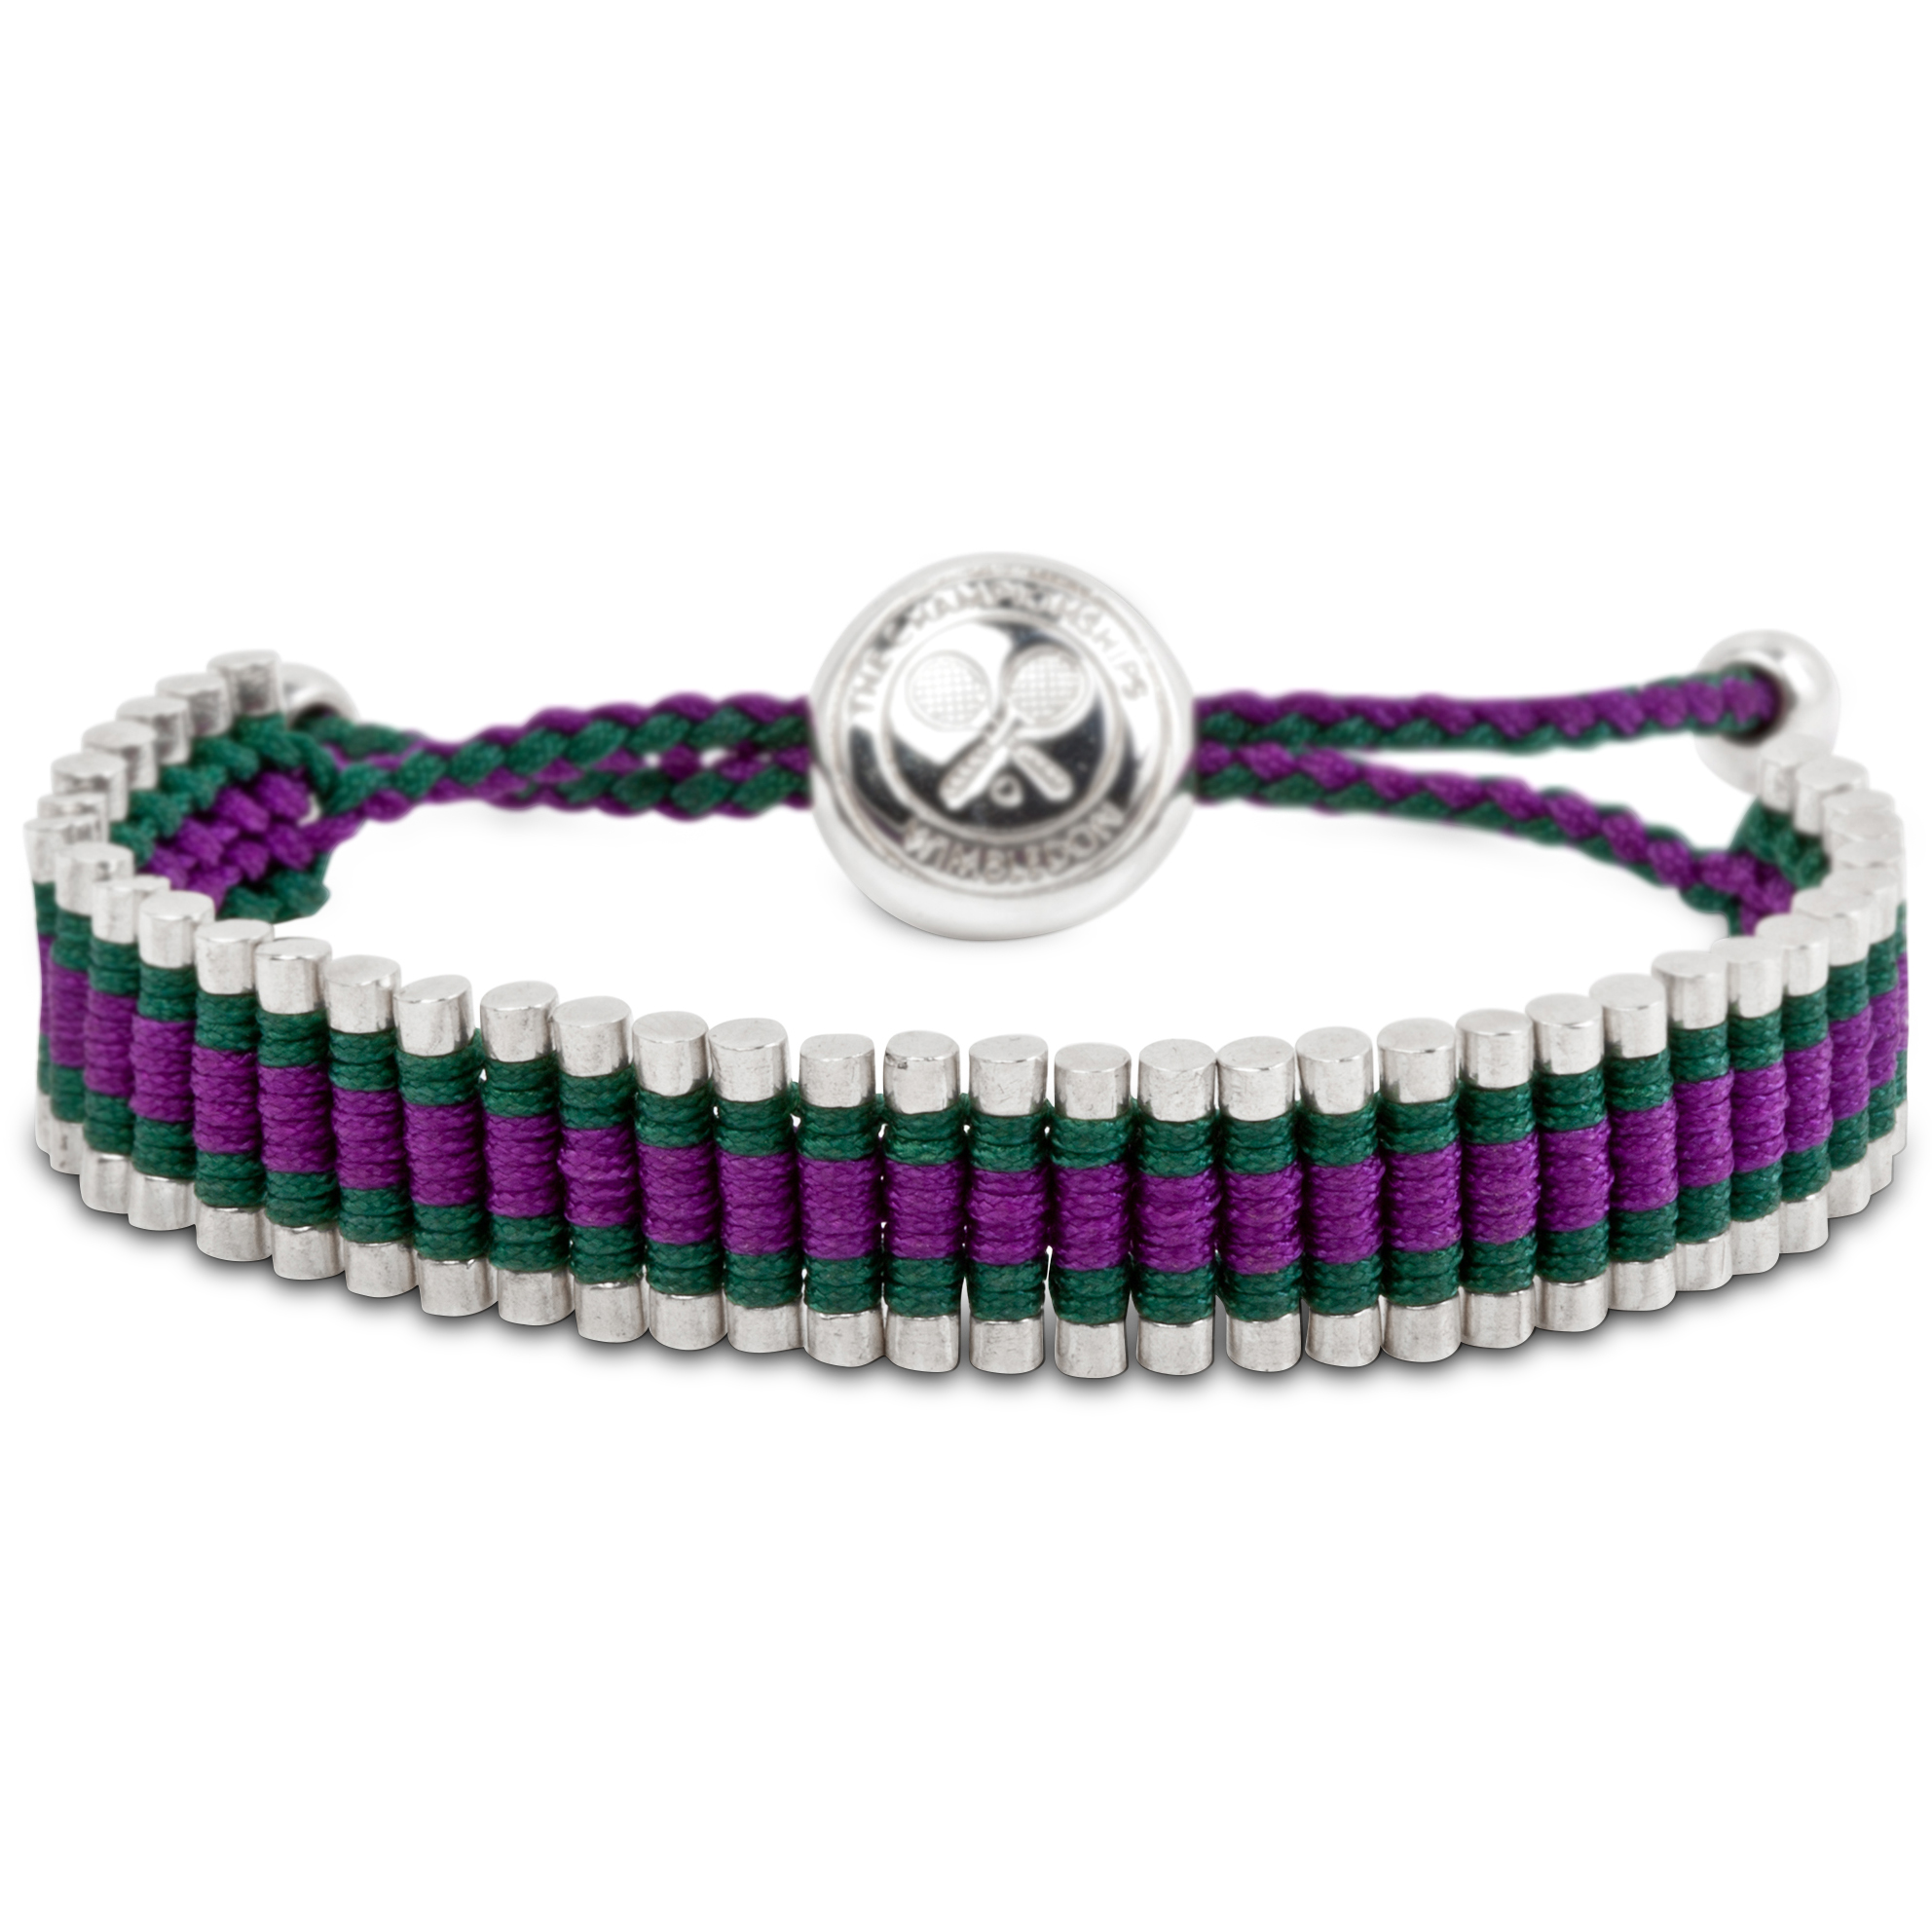 Wimbledon Friendship Bracelet